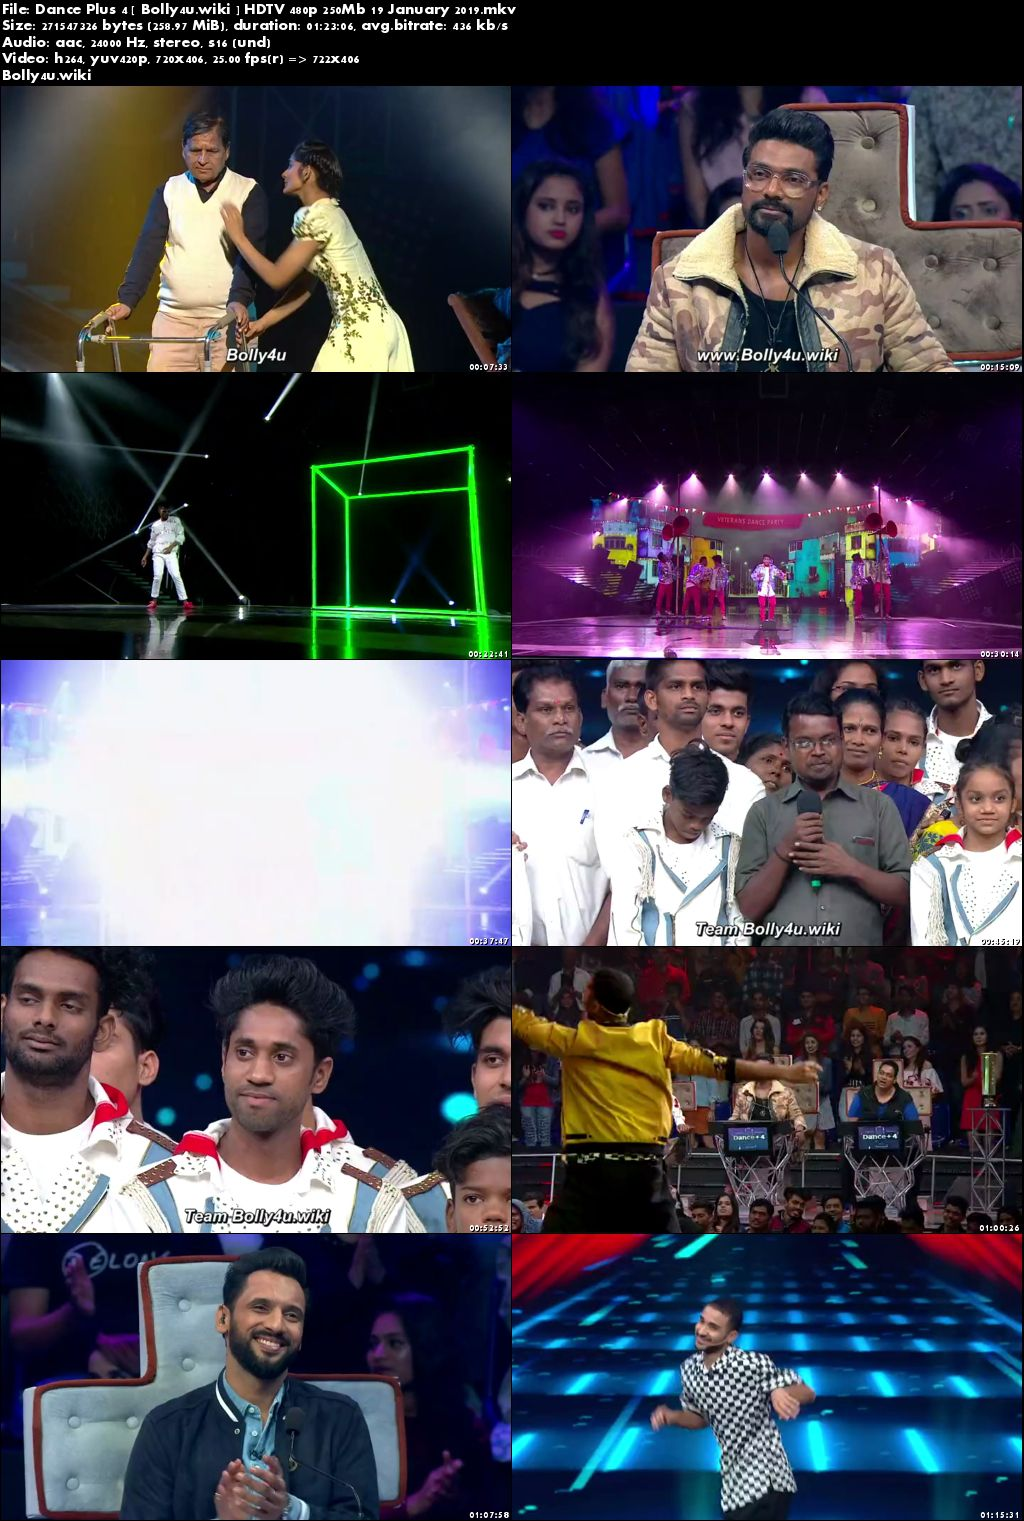 Dance Plus Season 4 HDTV 480p 250MB 19 January 2019 Download